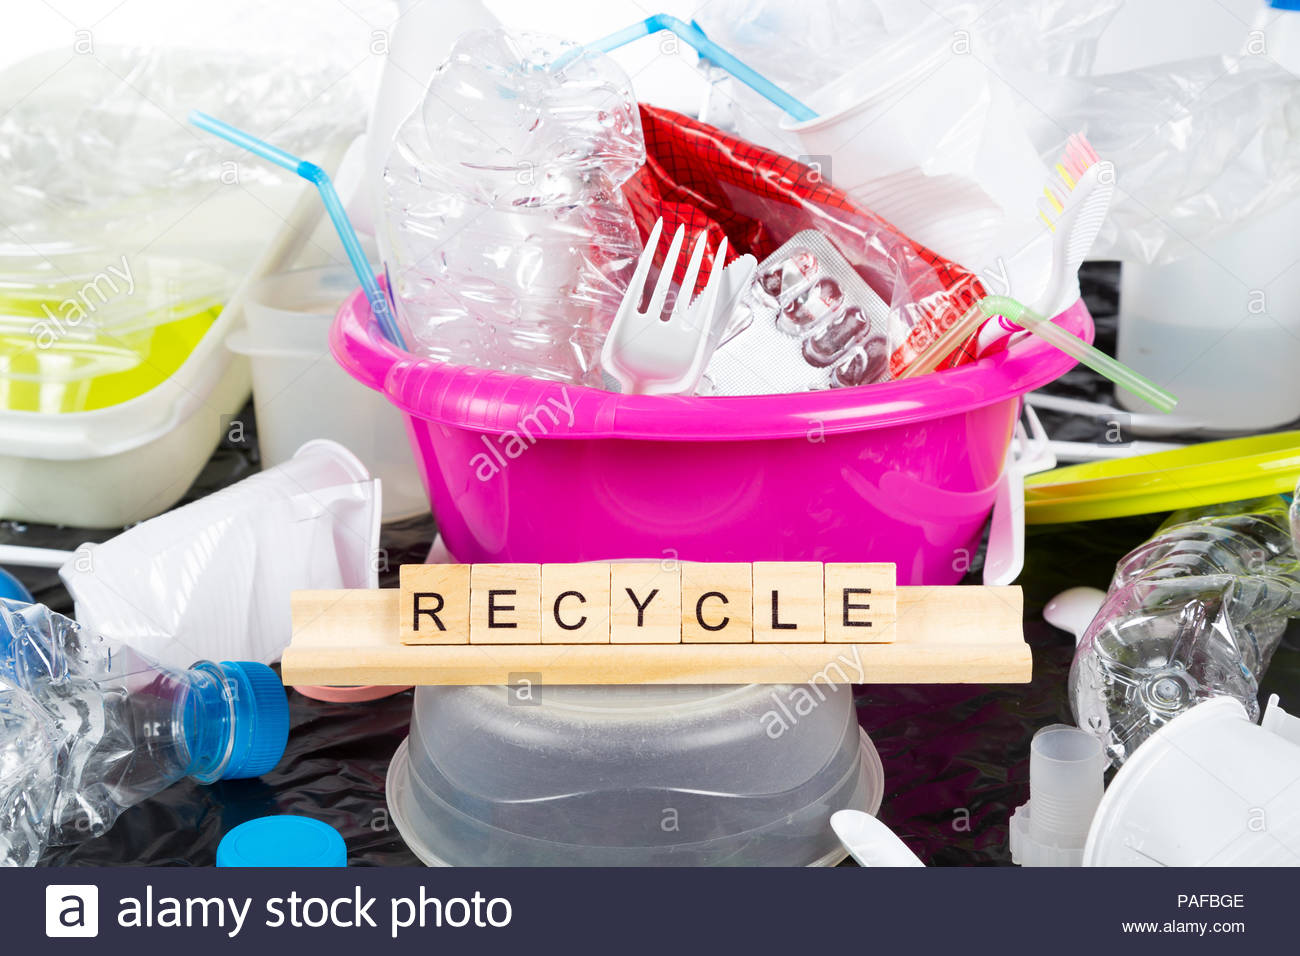 Plastic Bag Ban Stock Photos & Plastic Bag Ban Stock Images - Alamy